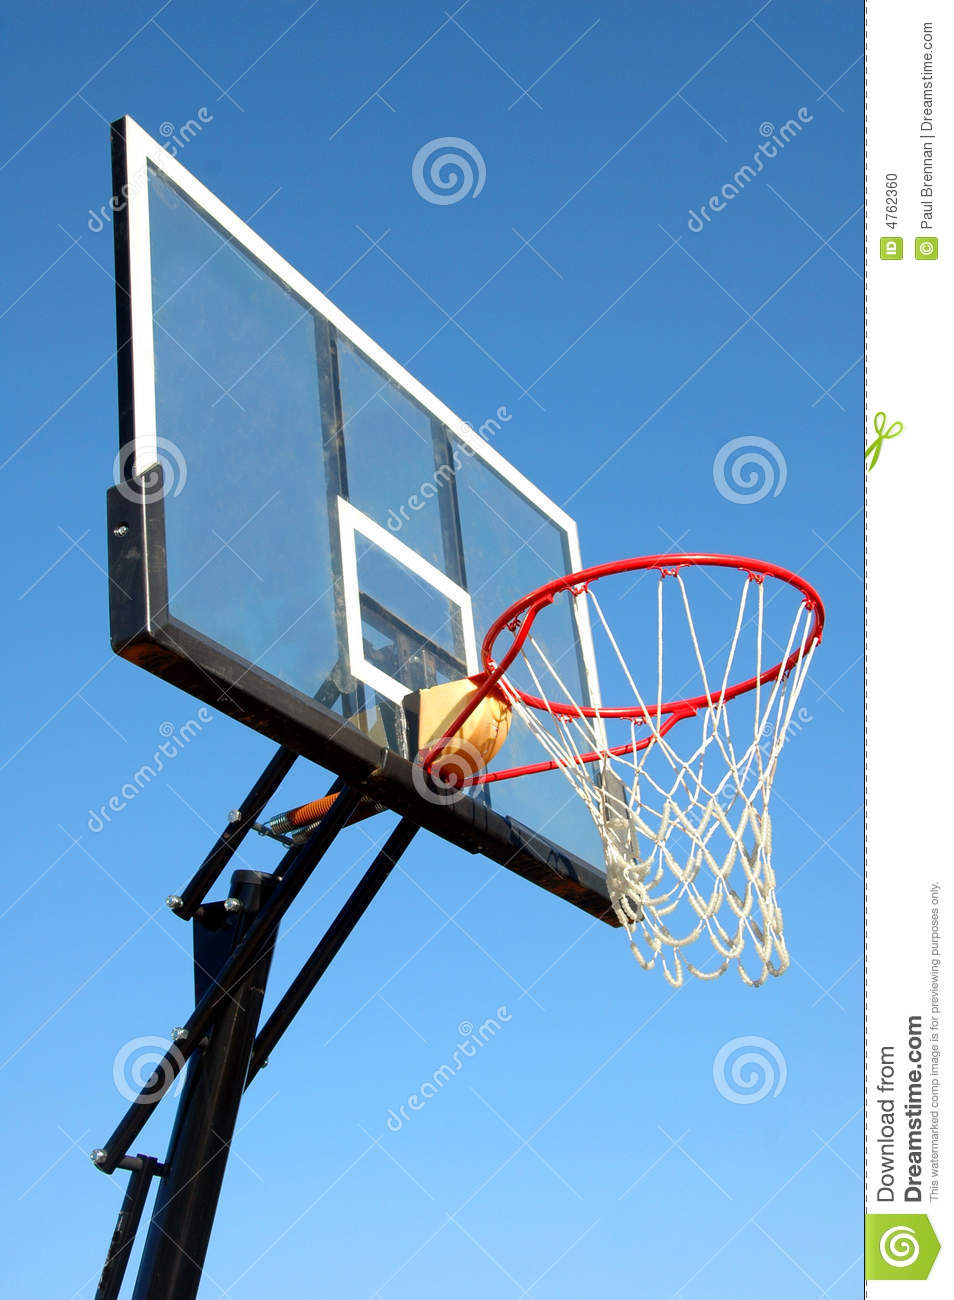 outdoor-basketball-net-4762360 Outdoor Home Basketball Hoop Plans on basketball hoop from the side, flowers outdoor, basketball hoop model, benches outdoor, basketball court, basketball hoop side angle, basketball hoop dimensions, basketball hoop front, games outdoor, basketball hoop background, basketball toys for toddlers, basketball hoop coloring pages, basketball hoop wallpaper, grills outdoor, basketball hoop set, lanterns outdoor,